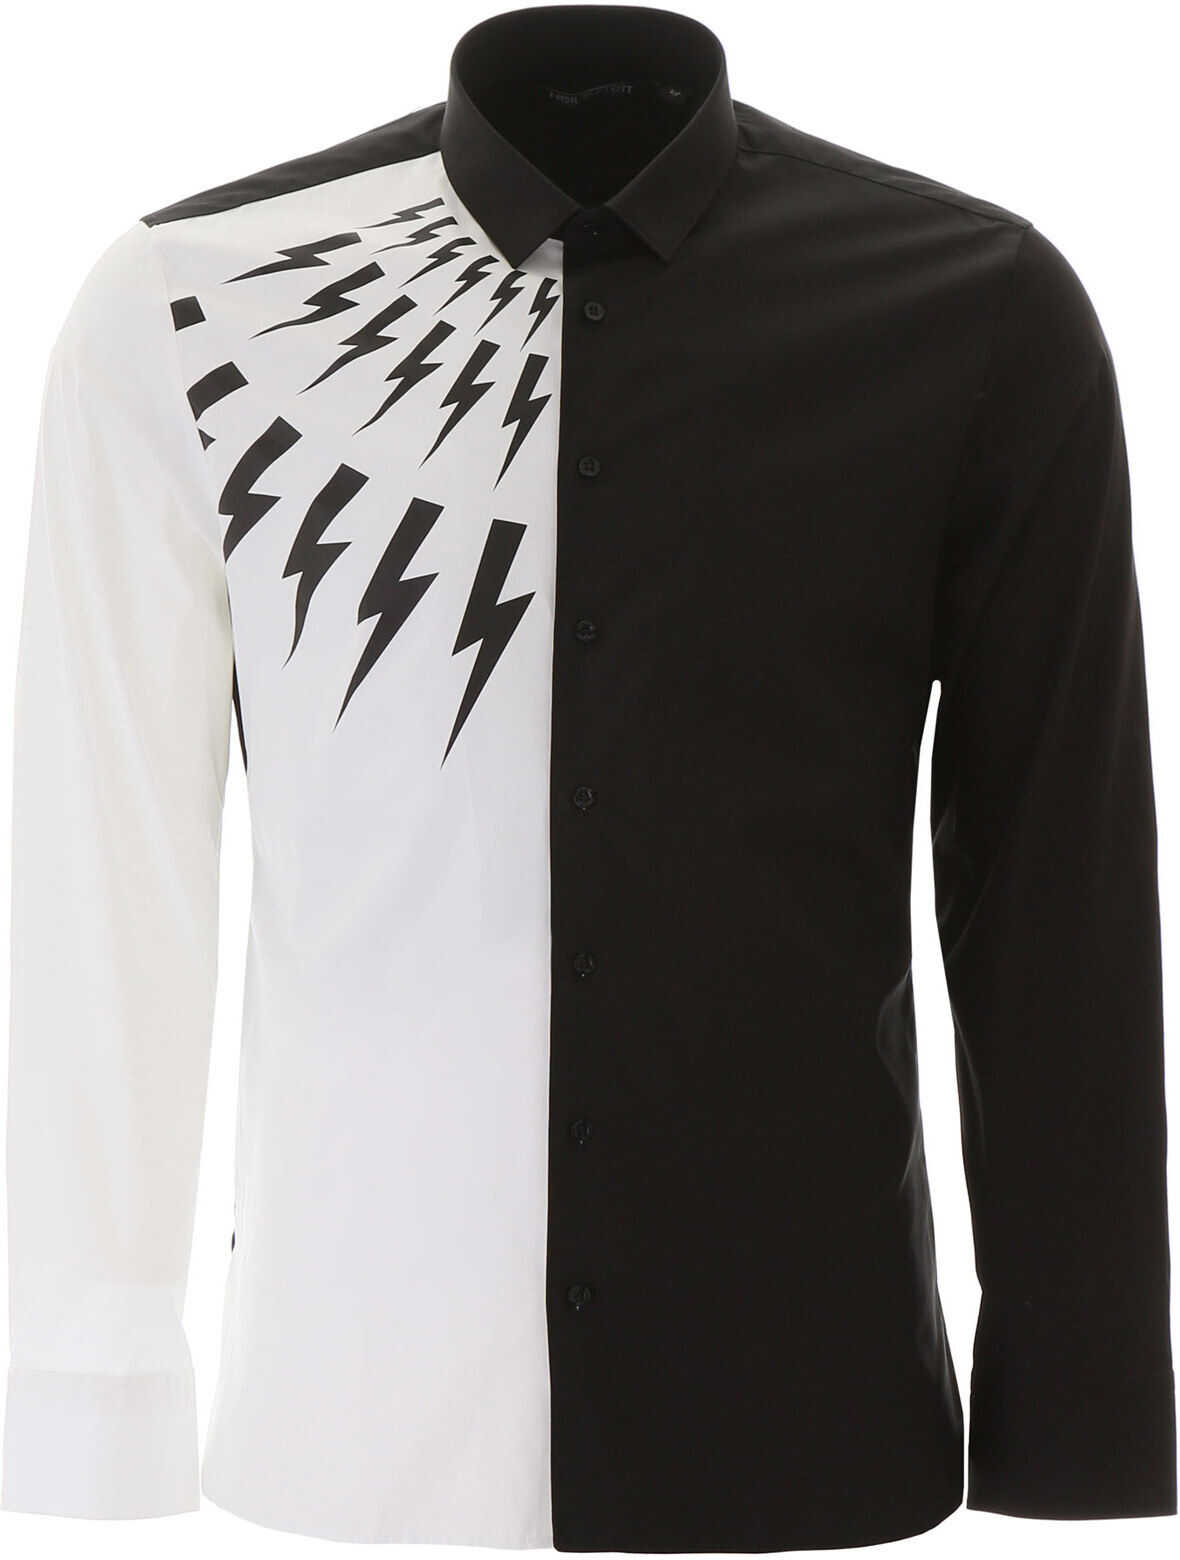 Neil Barrett Half Thunder Shirt BLACK WHITE